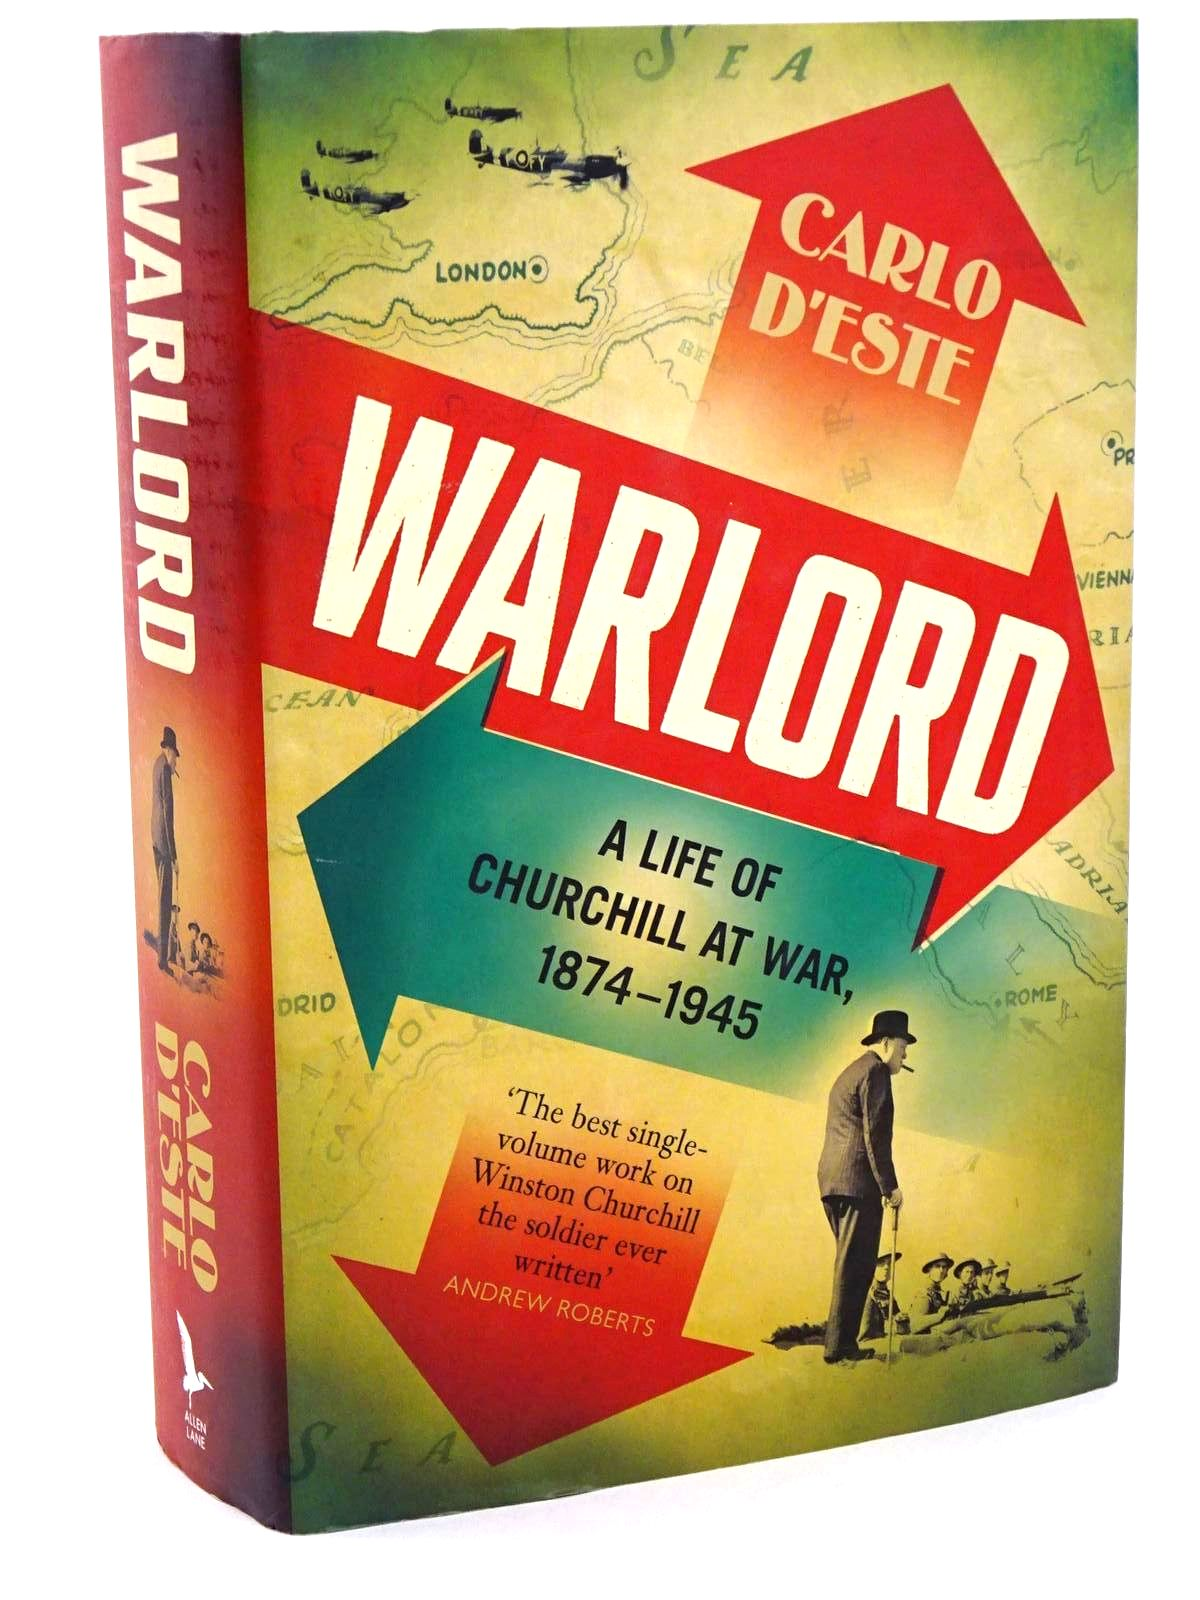 Photo of WARLORD A LIFE OF CHURCHILL AT WAR, 1874-1945 written by D'Este, Carlo published by Allen Lane (STOCK CODE: 1318390)  for sale by Stella & Rose's Books